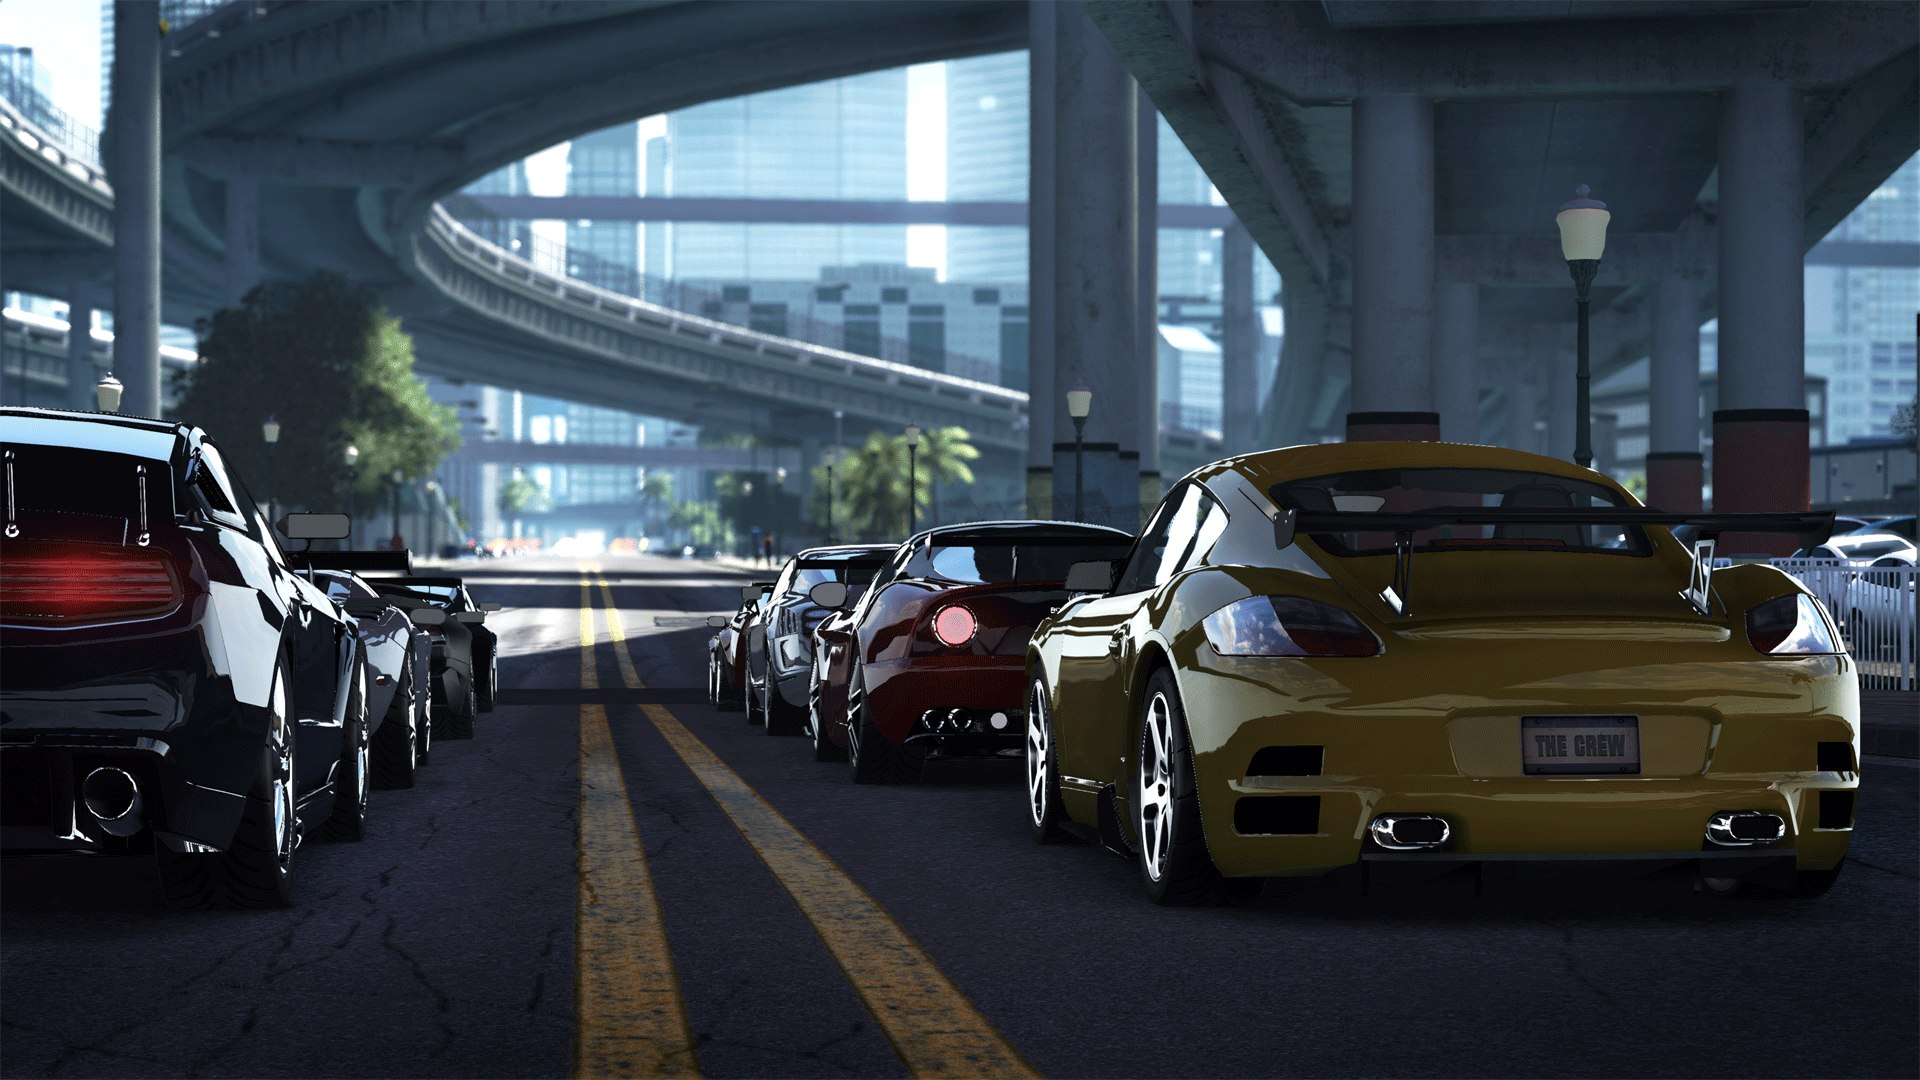 The Crew - Cars Lineup